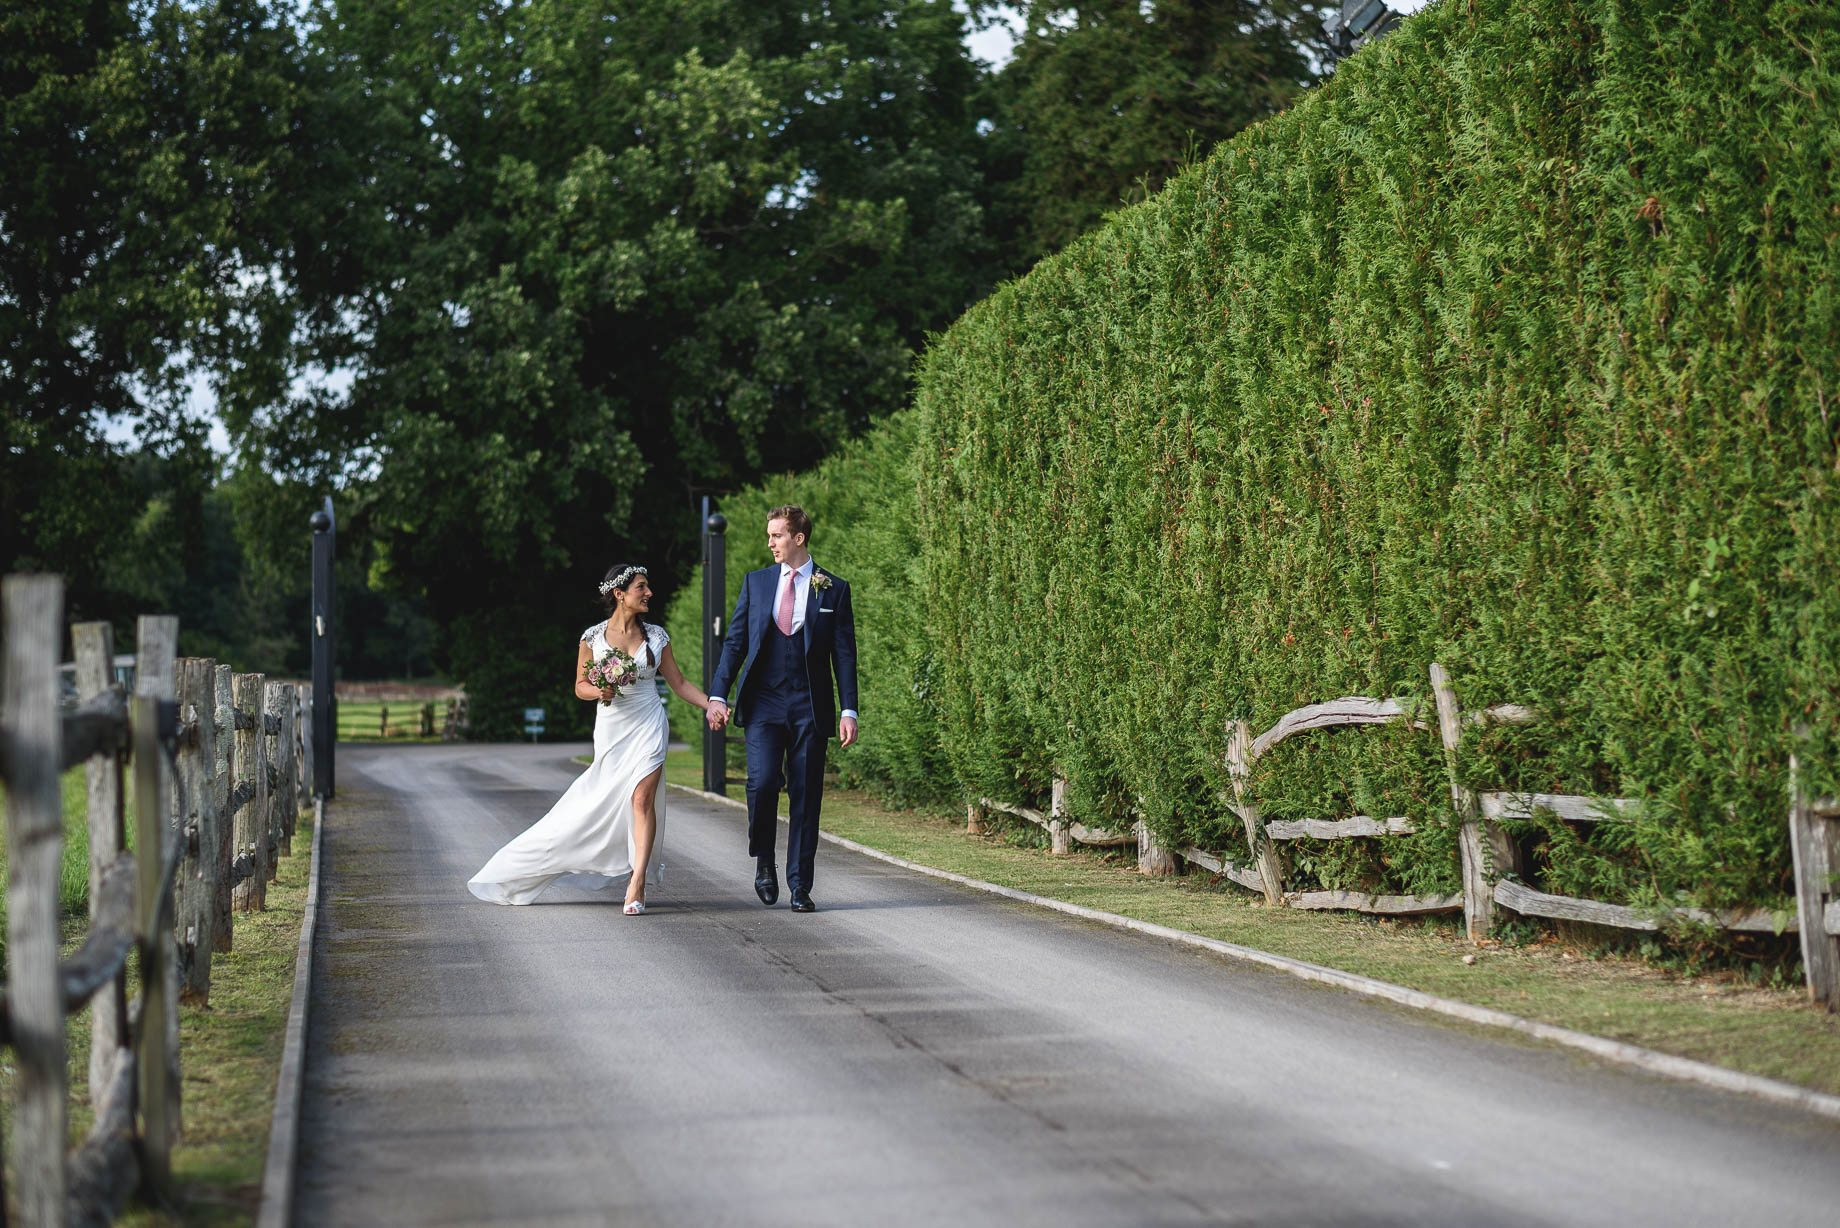 northbrook-park-wedding-photography-guy-collier-photography-tara-and-ed-105-of-196